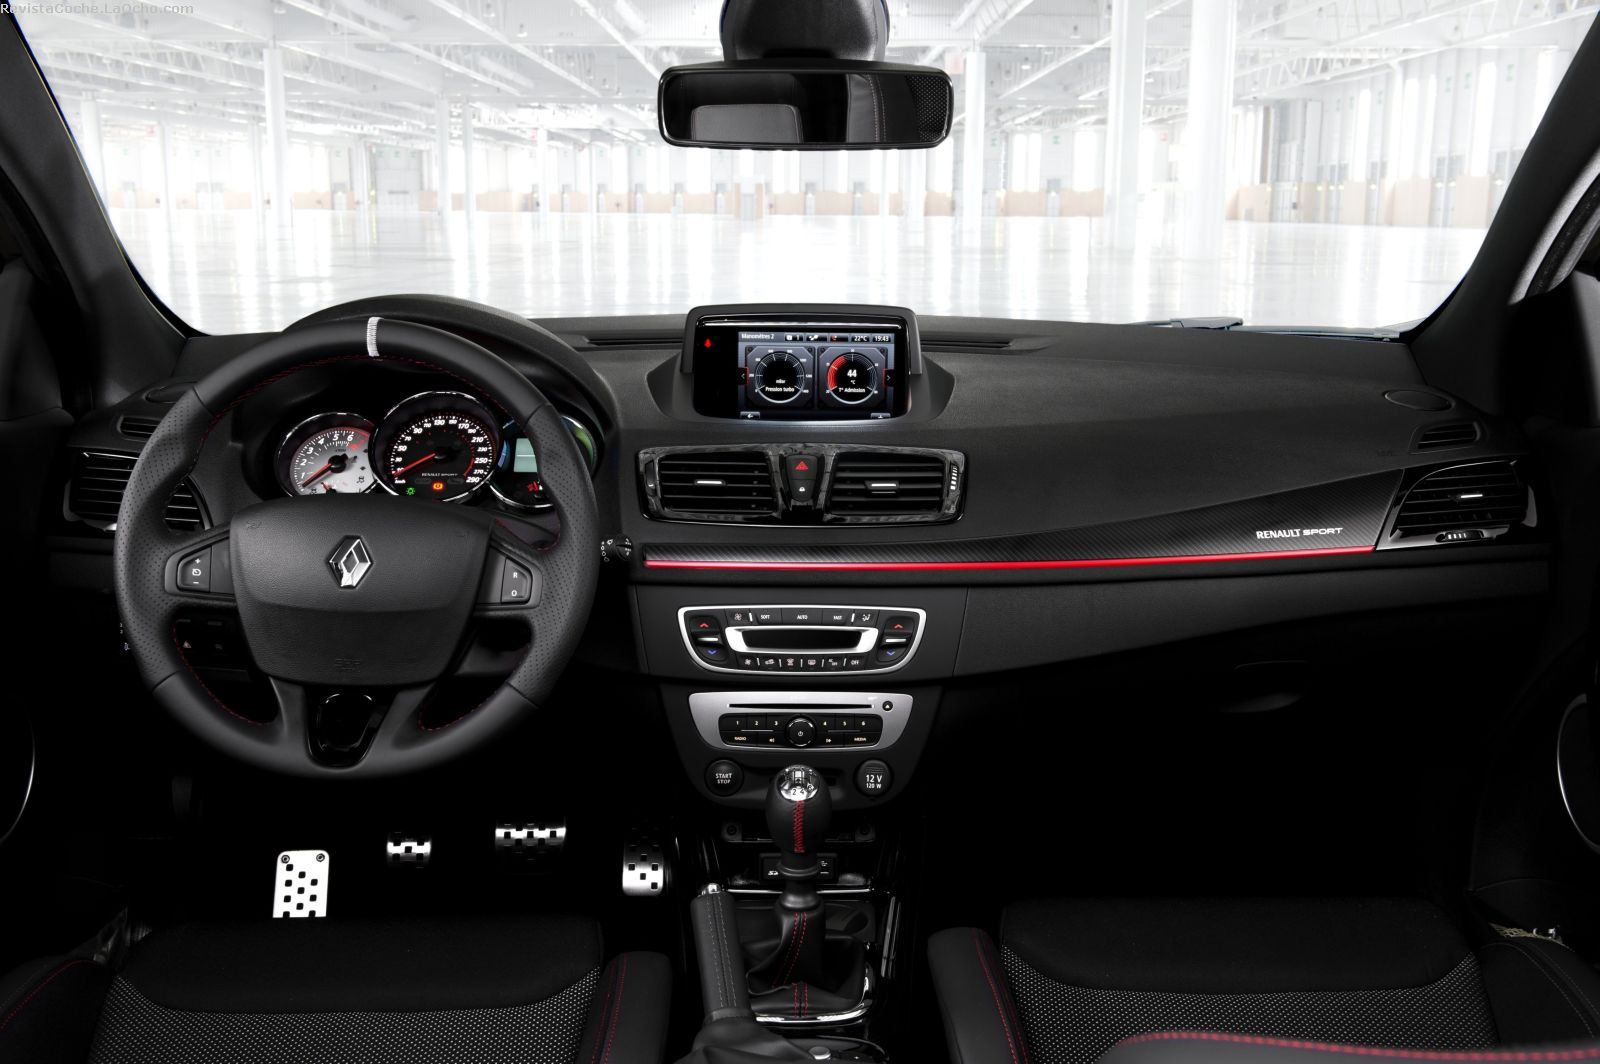 RENAULT Megane RS Coupe (2014 - Present)